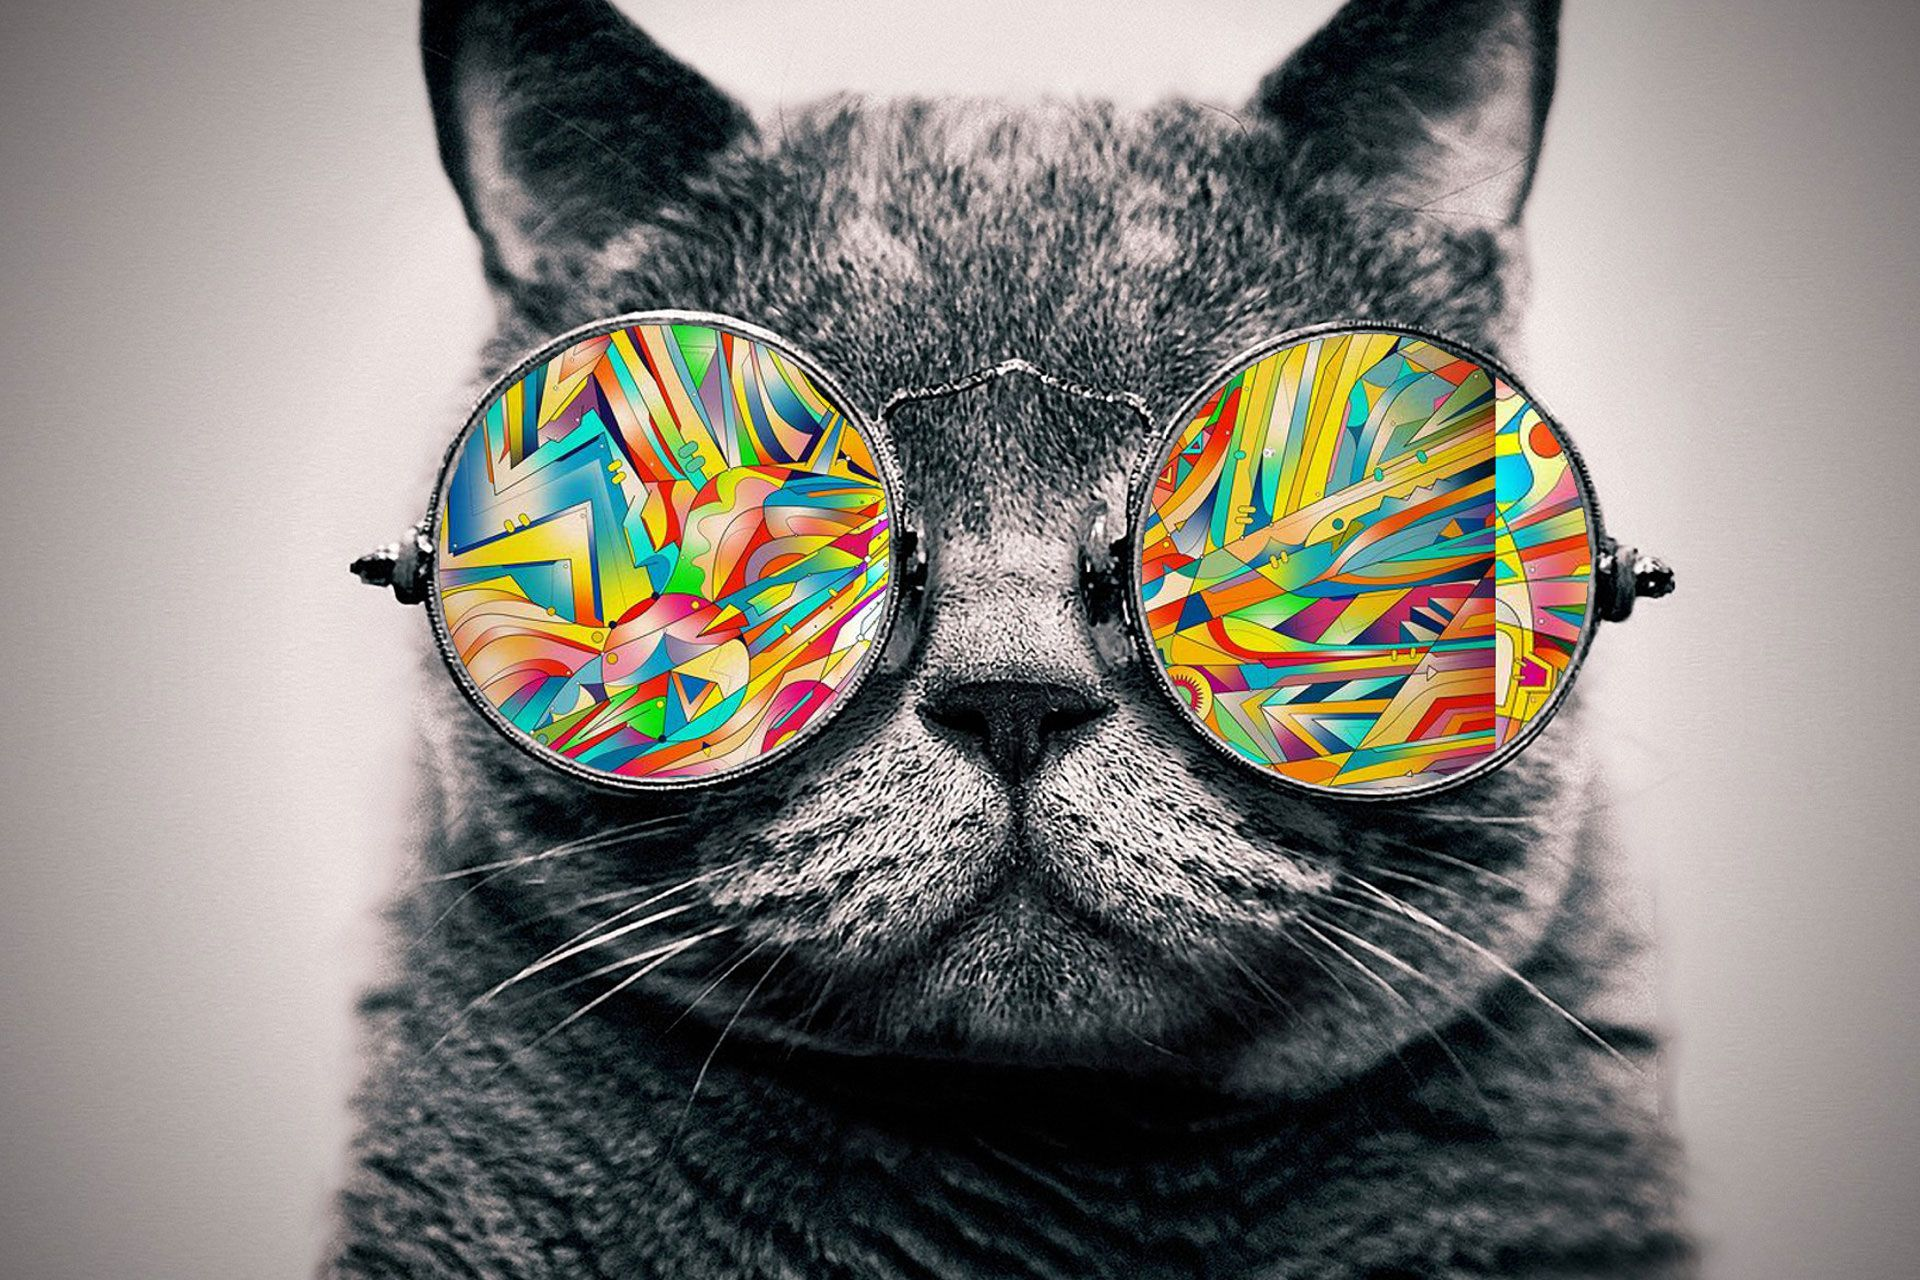 A Trippy Cat Desktop Background I Did On My Own I Hope It Came Out Pretty Good Cat Glasses Galaxy Cat Cat Sunglasses